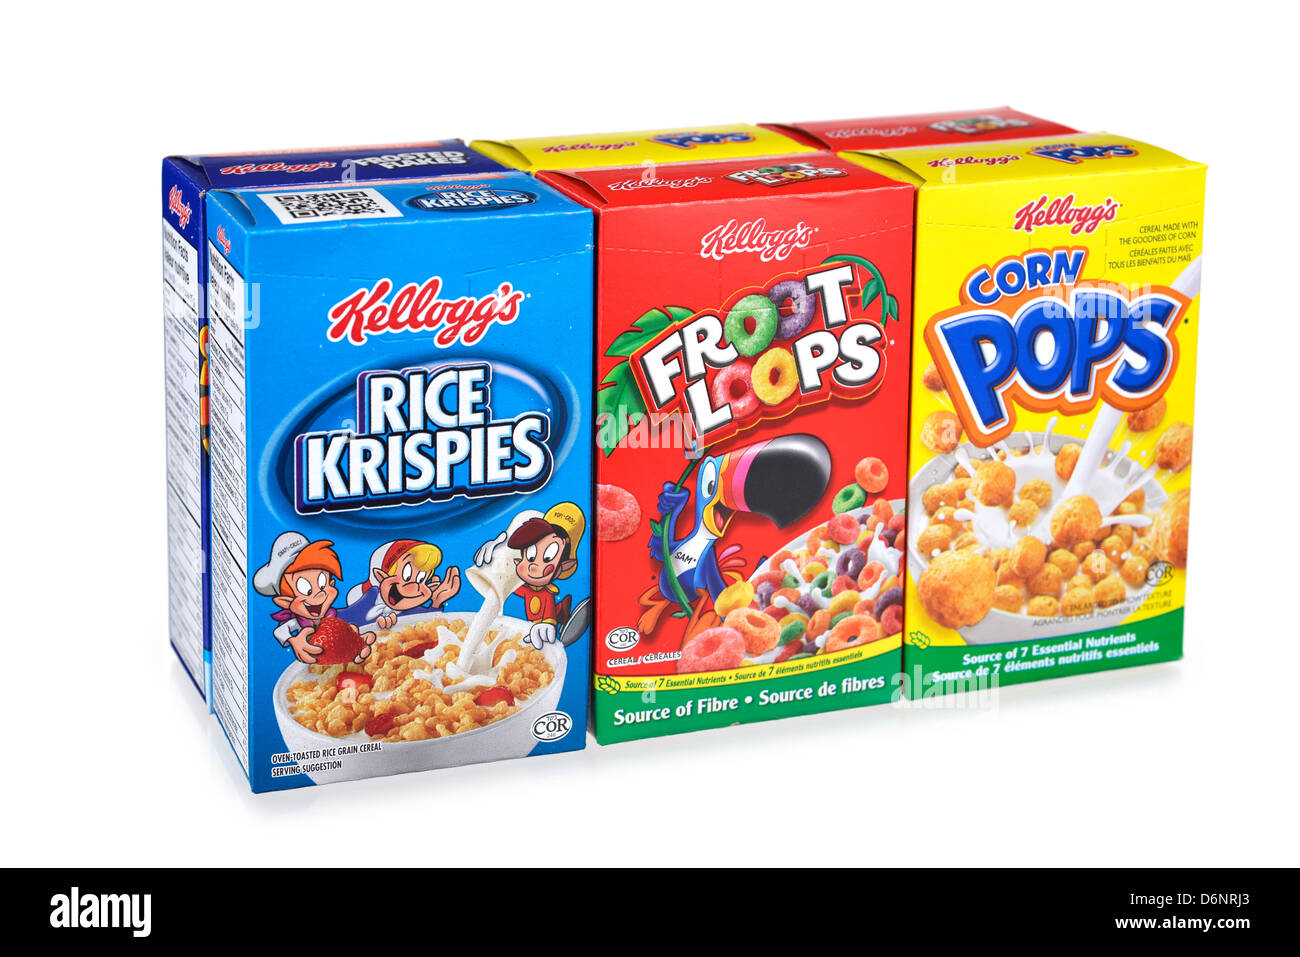 Cereal Boxes, Kellogg's, Breakfast Cereals - Stock Image